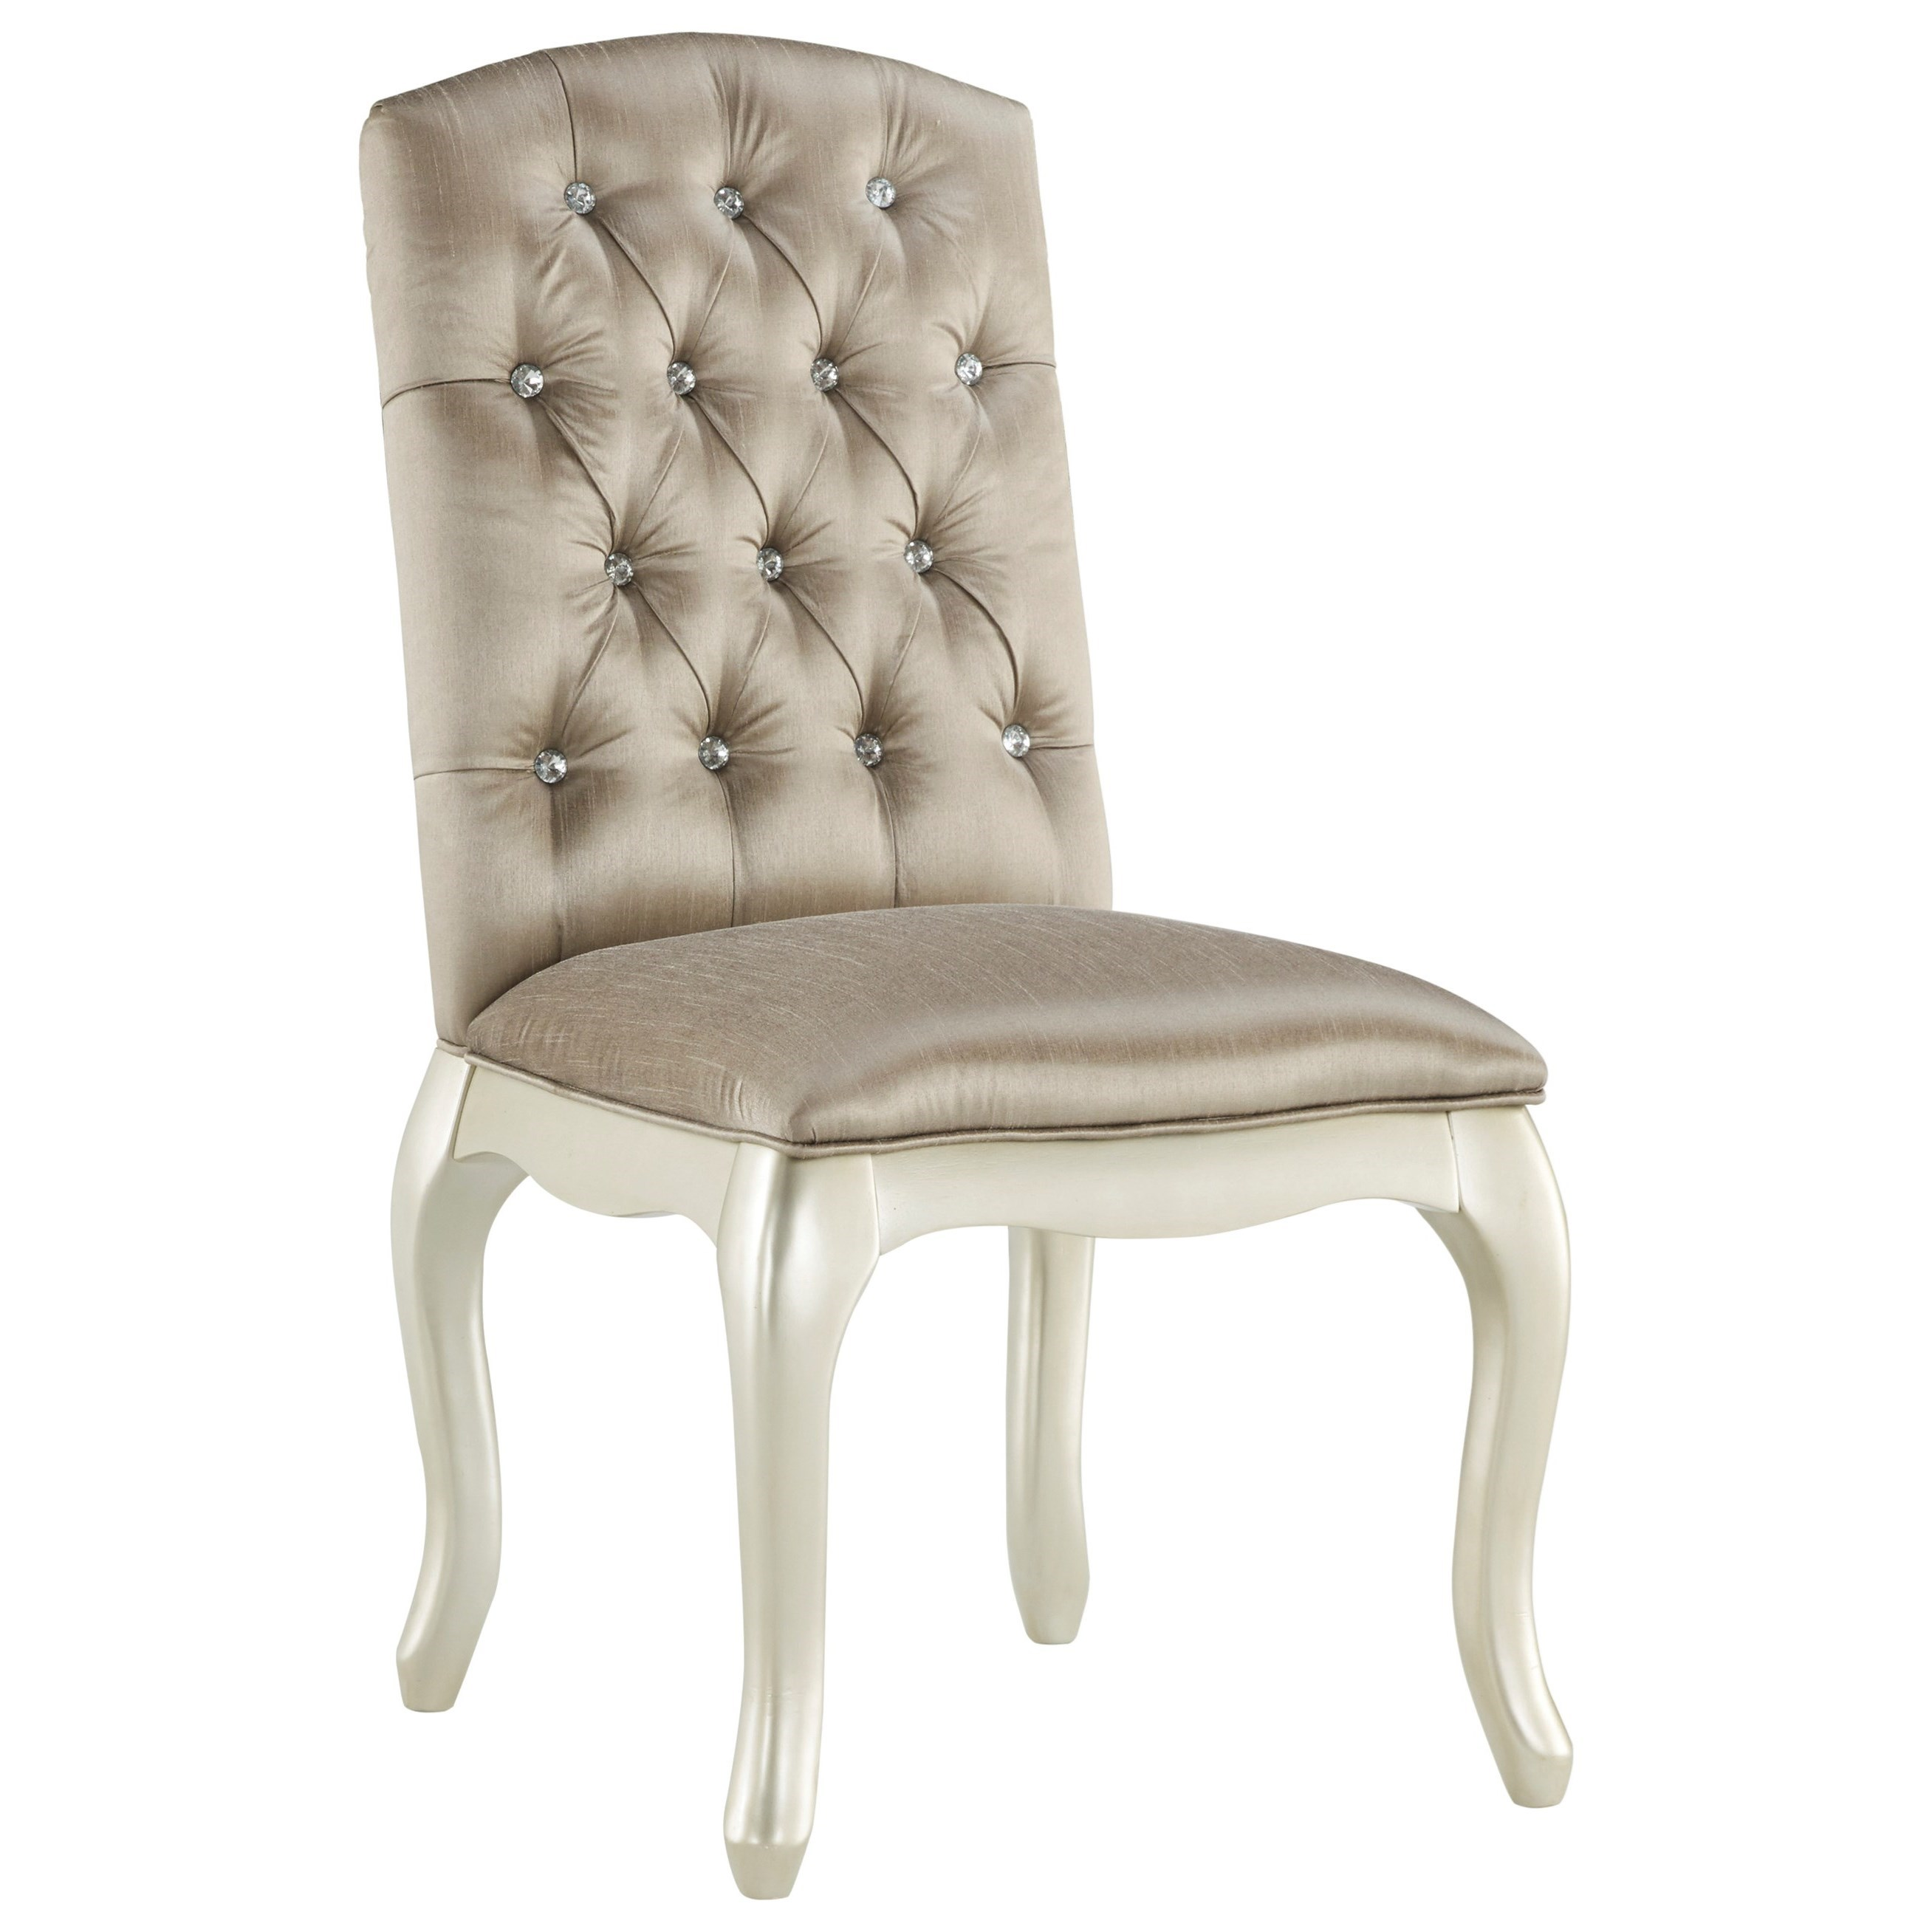 Upholstered Vanity Chair Signature Design By Ashley Cassimore Upholstered Chair